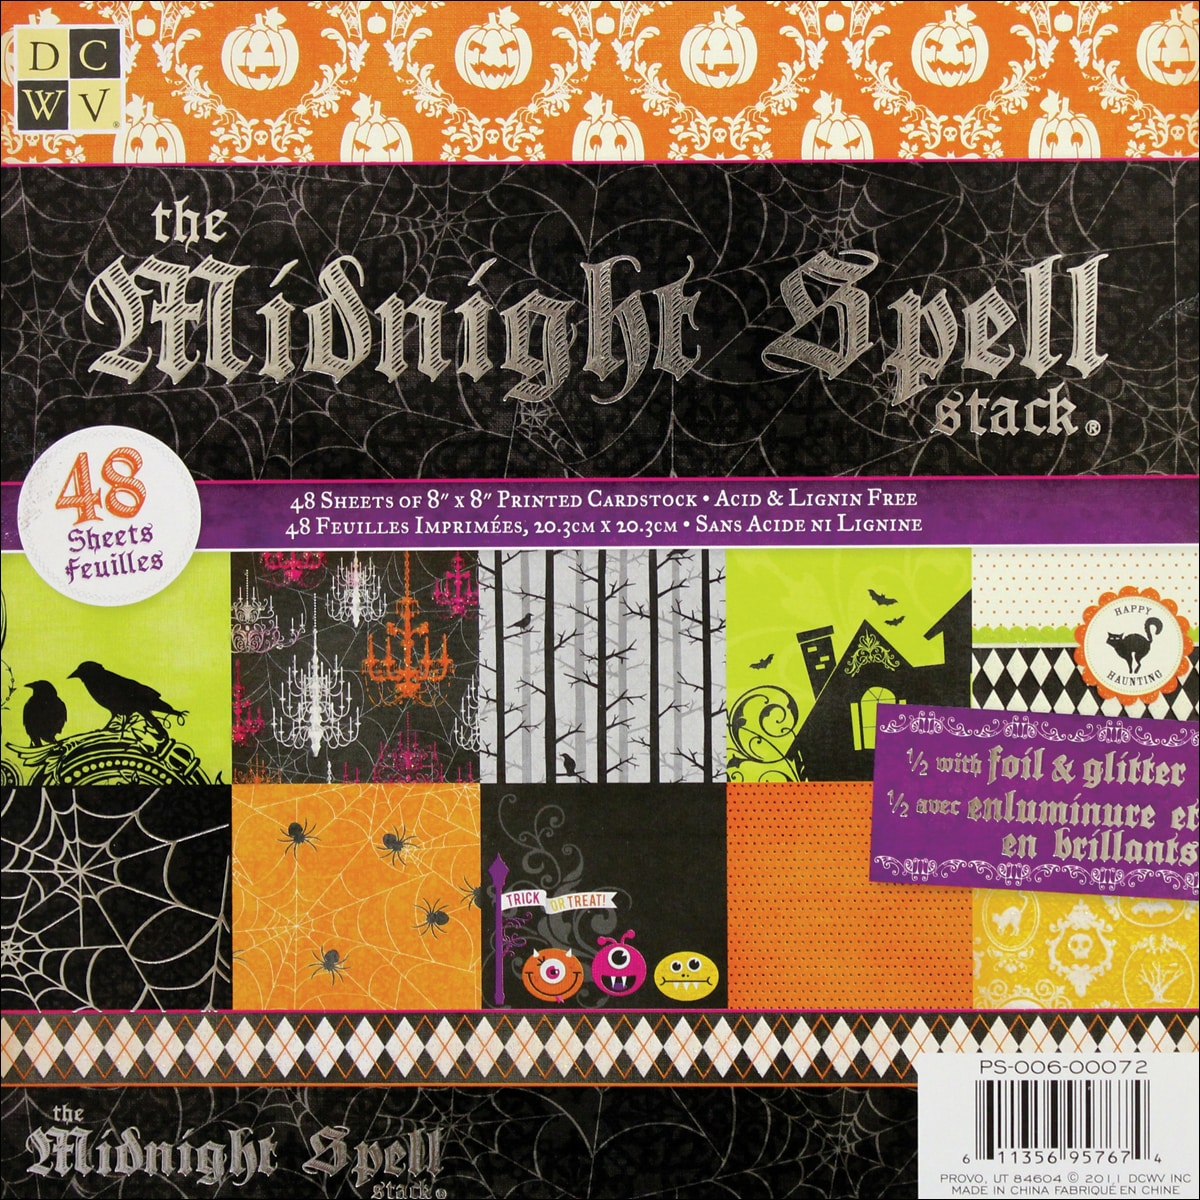 Die Cuts with a View 'Midnight Spell' Paper Stack (Pack of 48 sheets)